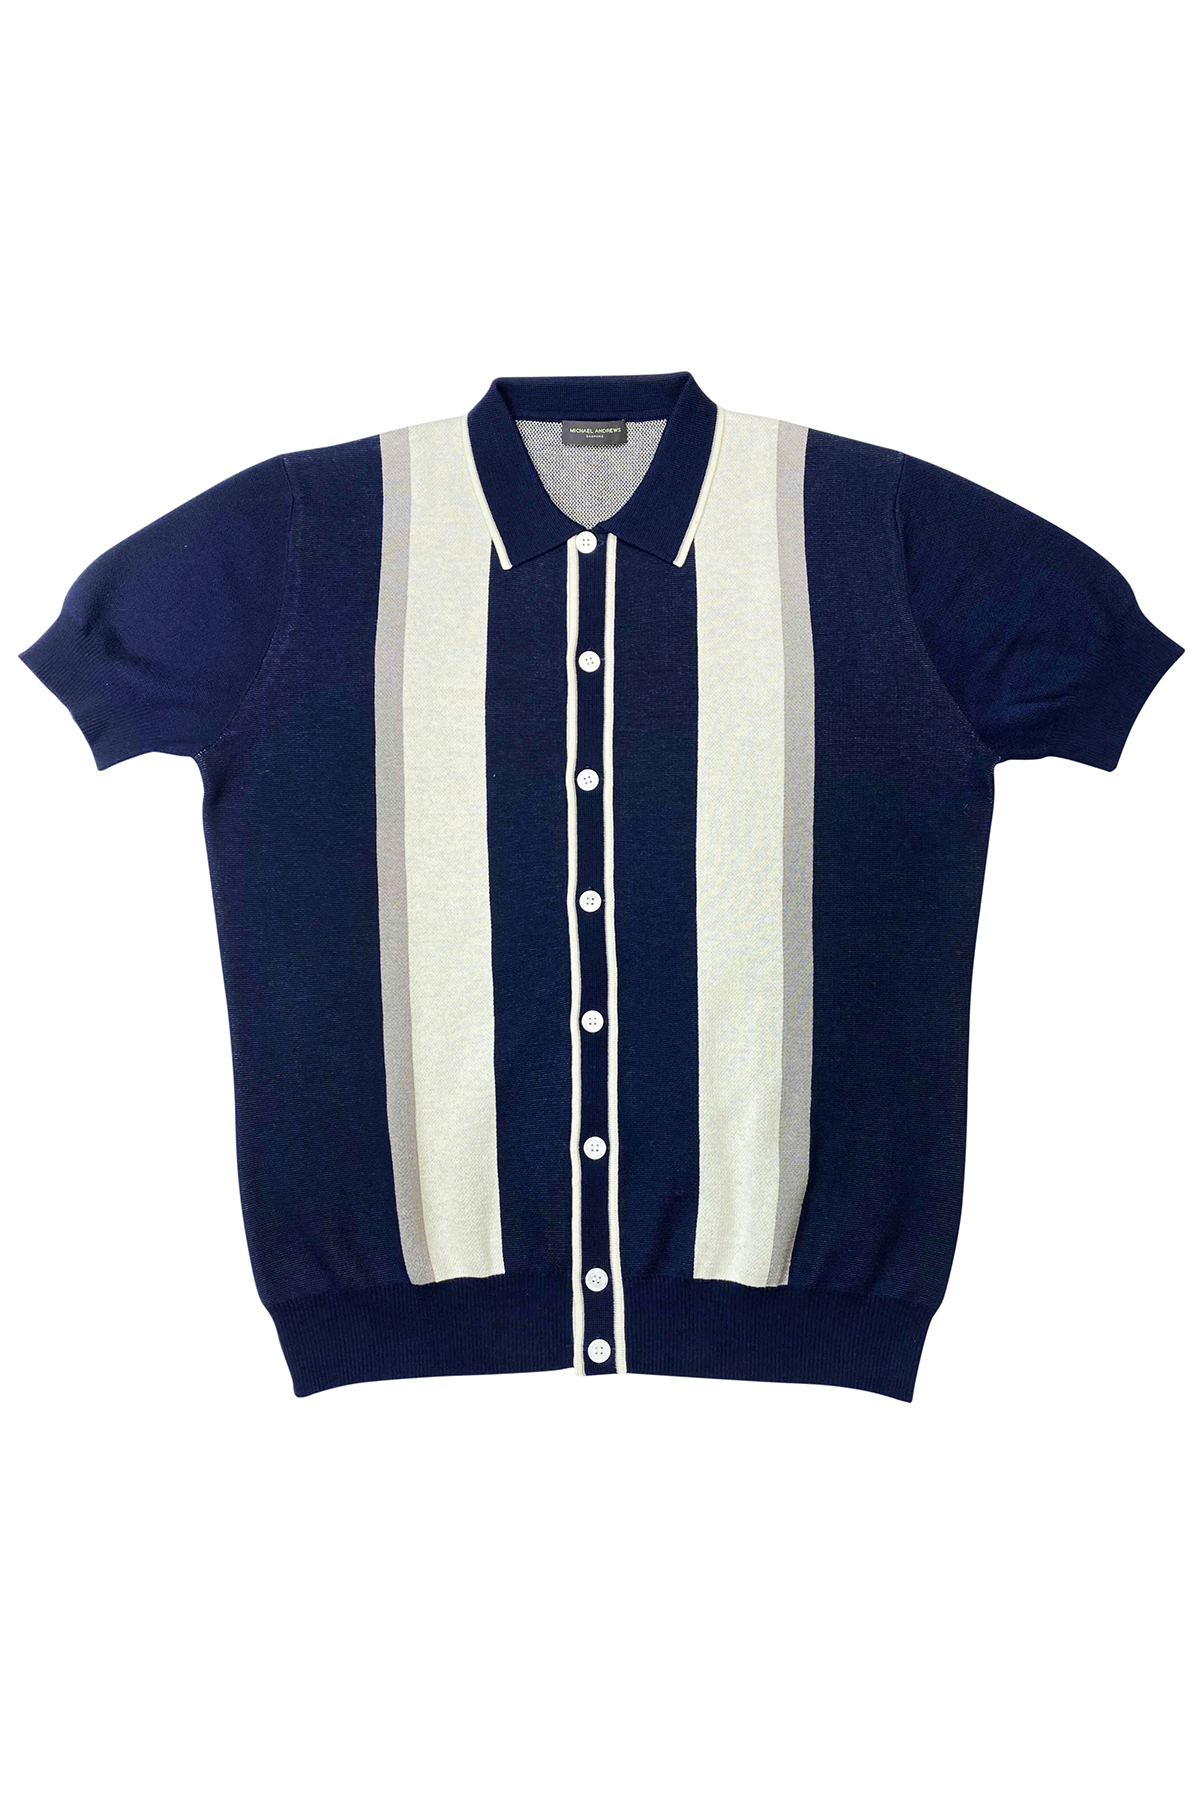 Navy Pima Cotton Knit Retro Stripe Buttondown